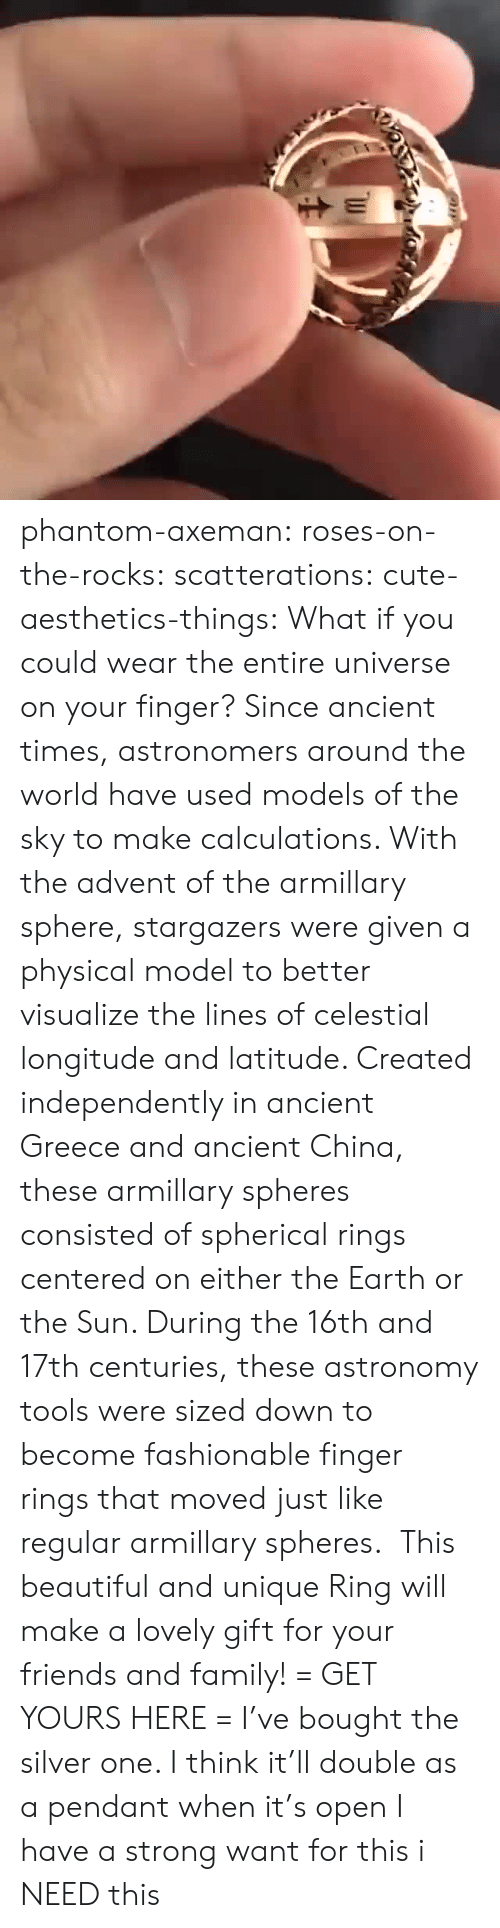 Beautiful, Cute, and Family: phantom-axeman:  roses-on-the-rocks: scatterations:   cute-aesthetics-things:  What if you could wear the entire universe on your finger? Since ancient times, astronomers around the world have used models of the sky to make calculations. With the advent of the armillary sphere, stargazers were given a physical model to better visualize the lines of celestial longitude and latitude. Created independently in ancient Greece and ancient China, these armillary spheres consisted of spherical rings centered on either the Earth or the Sun. During the 16th and 17th centuries, these astronomy tools were sized down to become fashionable finger rings that moved just like regular armillary spheres. This beautiful and unique Ring will make a lovely gift for your friends and family! = GET YOURS HERE =   I've bought the silver one. I think it'll double as a pendant when it's open    I have a strong want for this   i NEED this